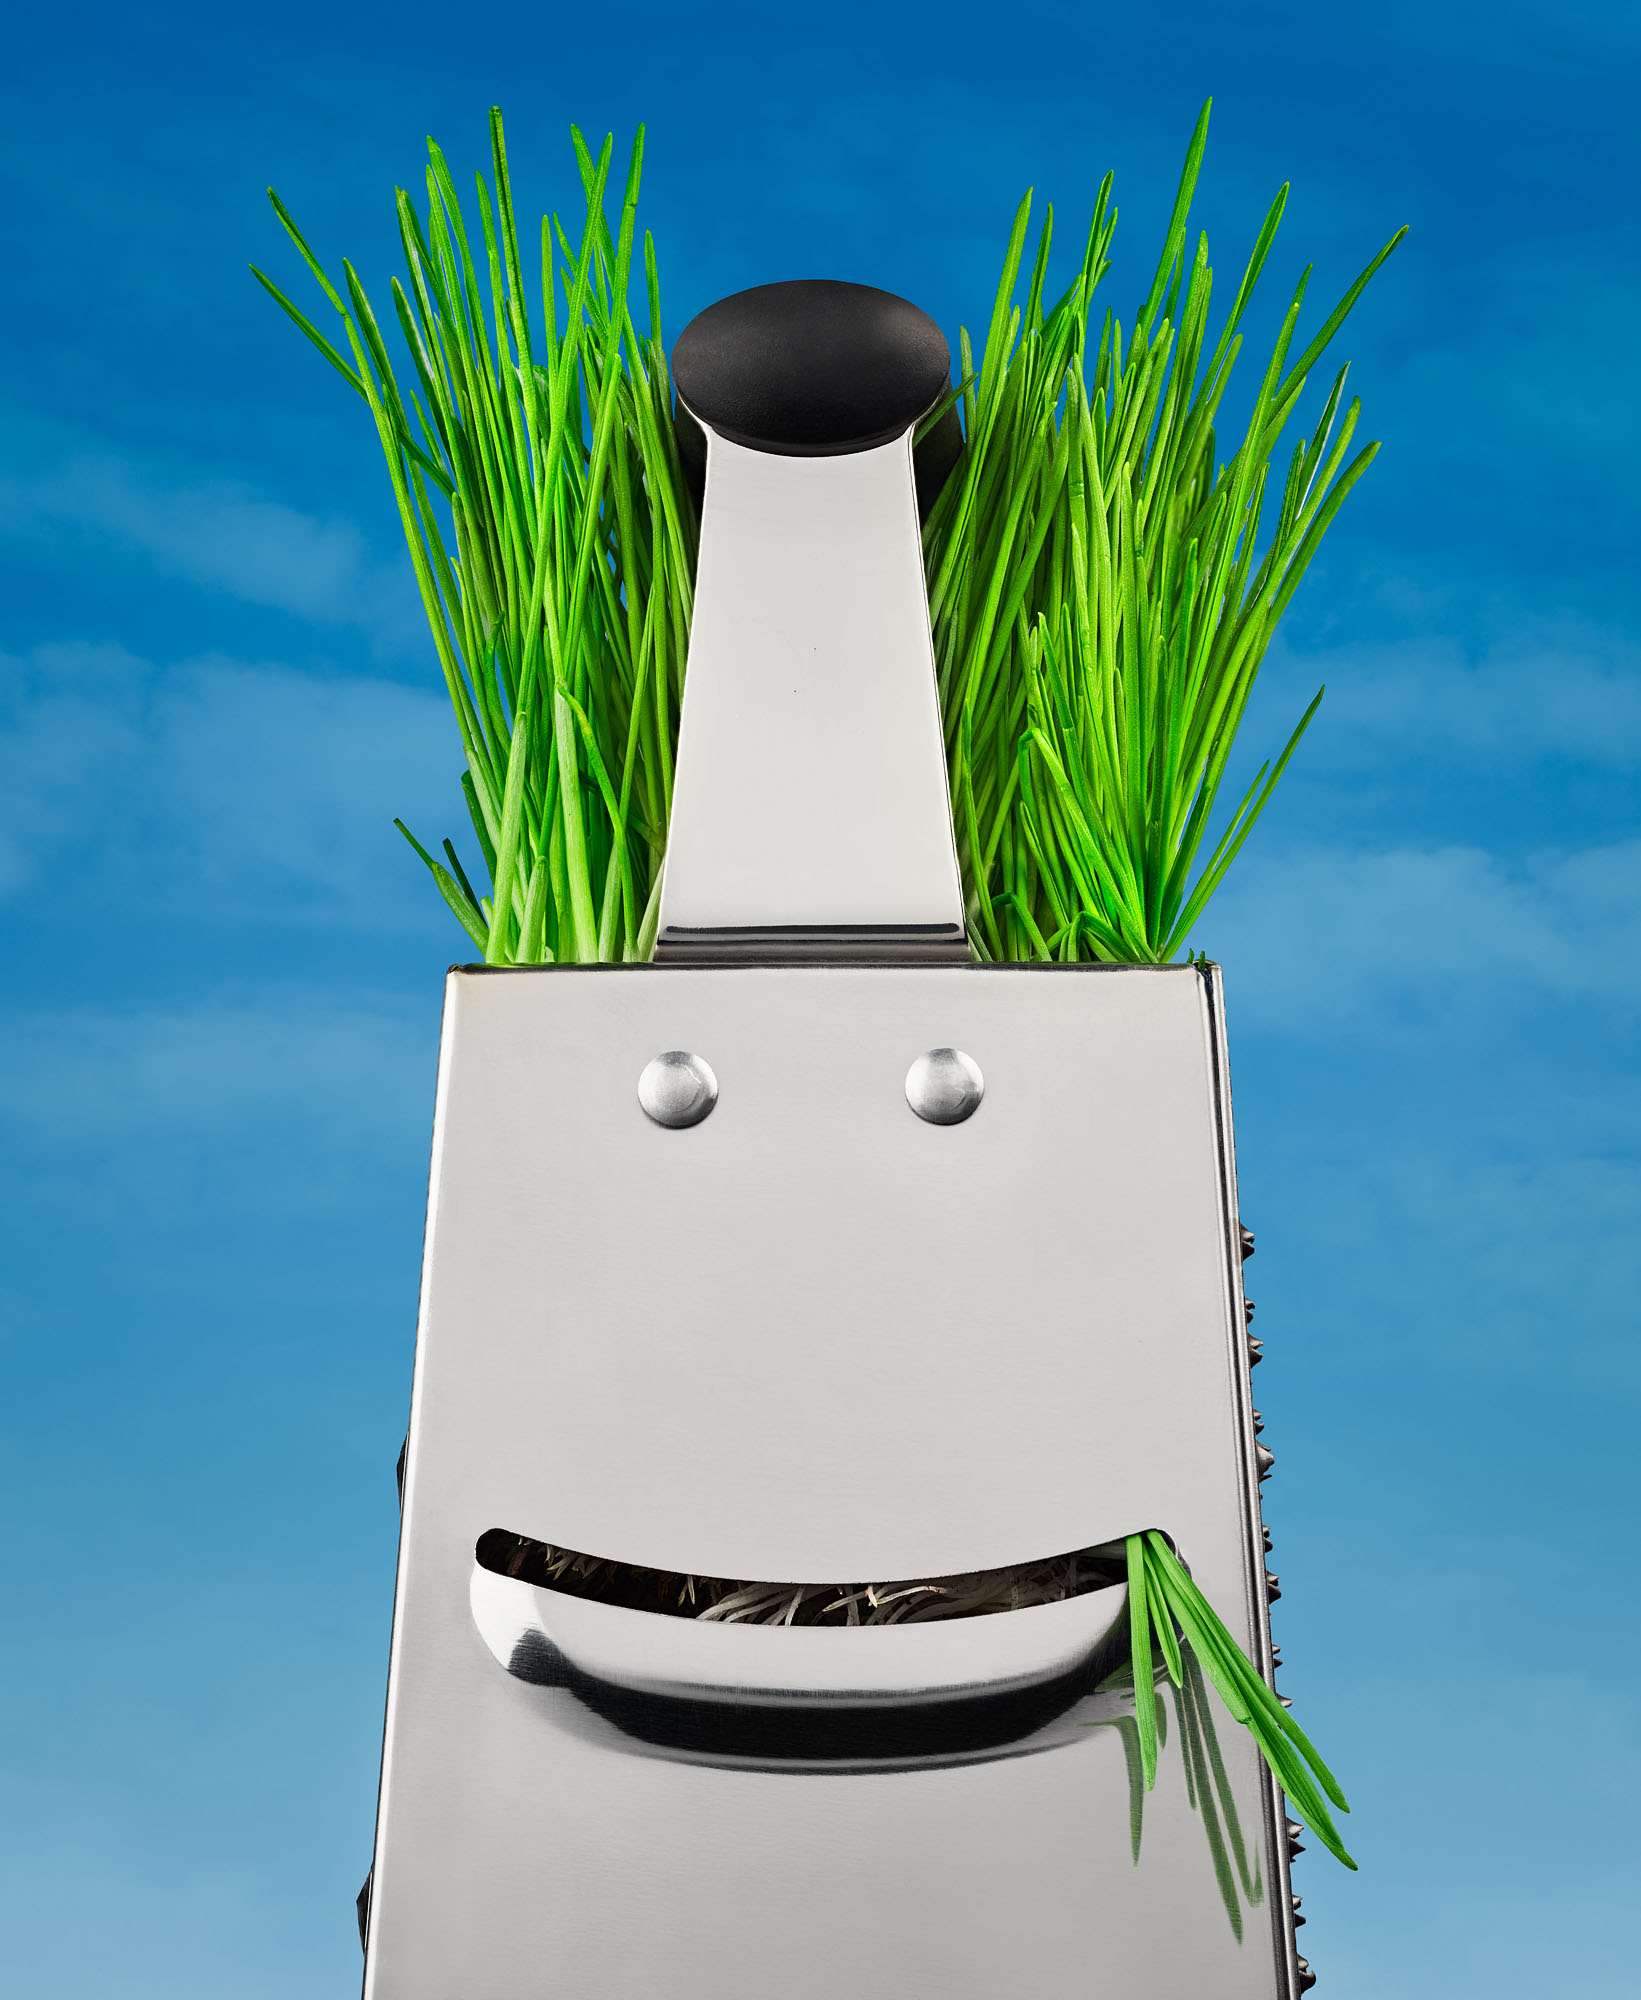 Grater with Wheatgrass